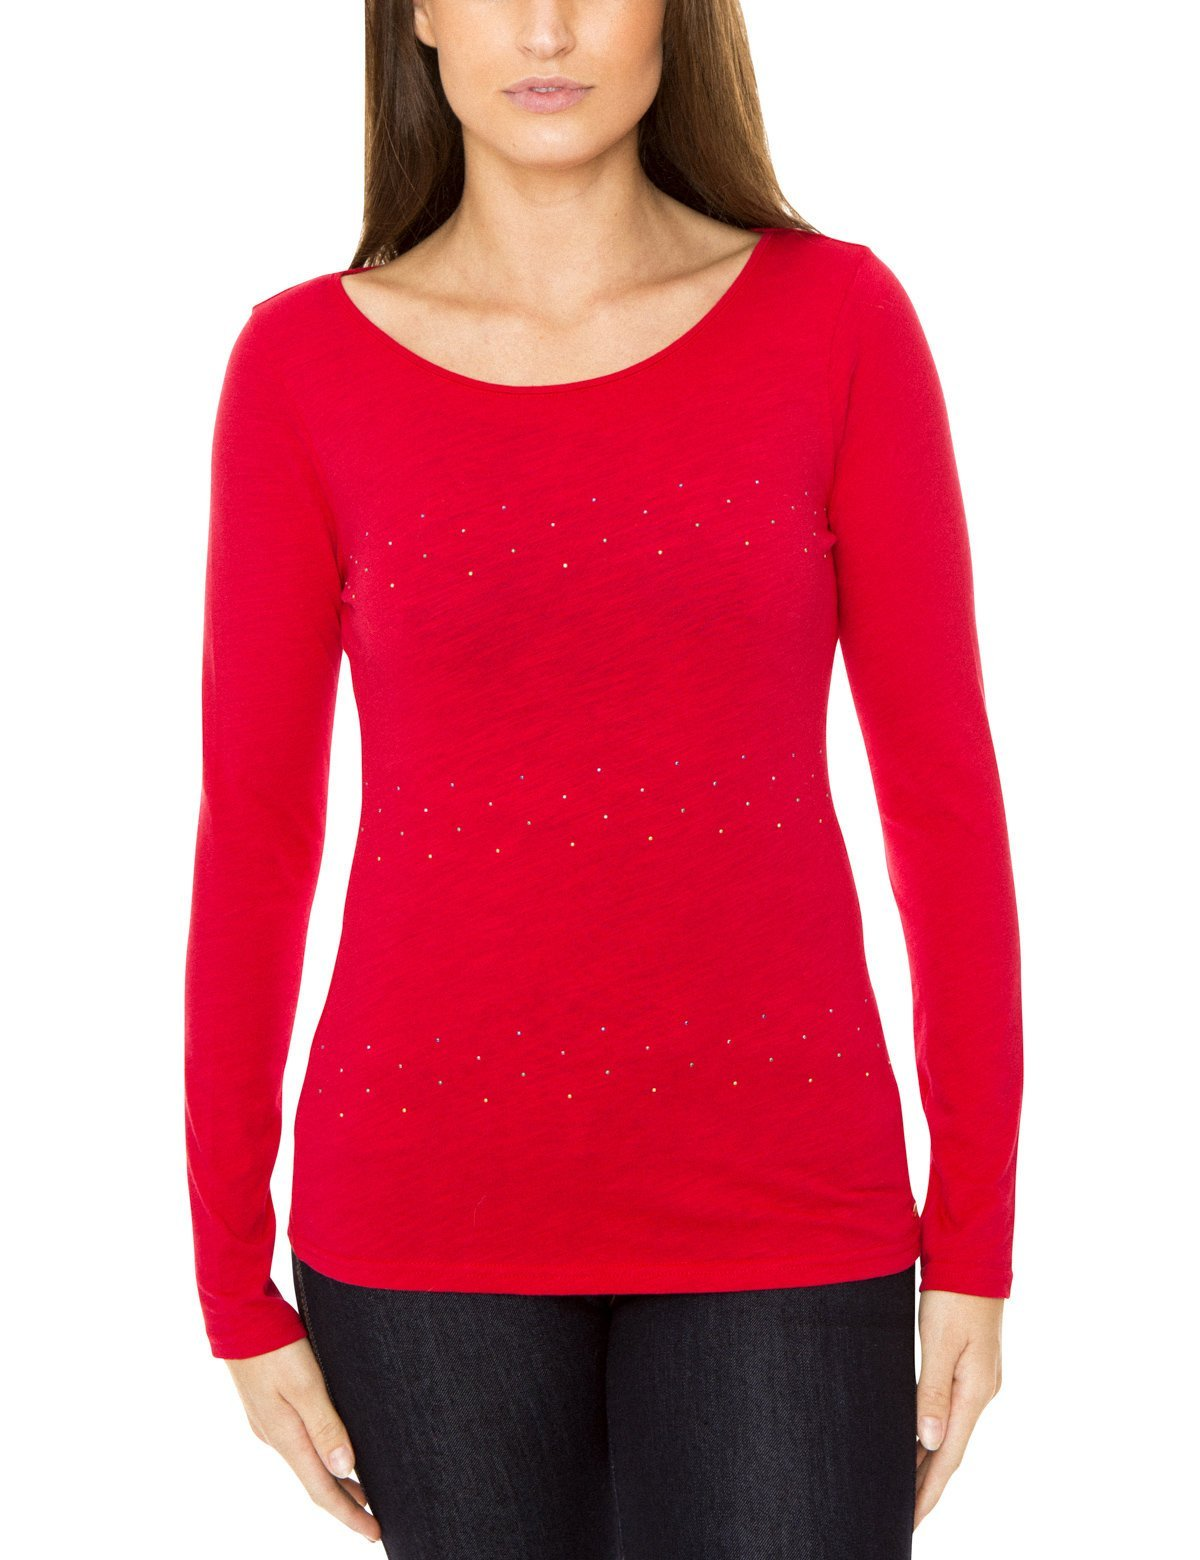 Rhinestone Long Sleeve Tee - U.S. Polo Assn.